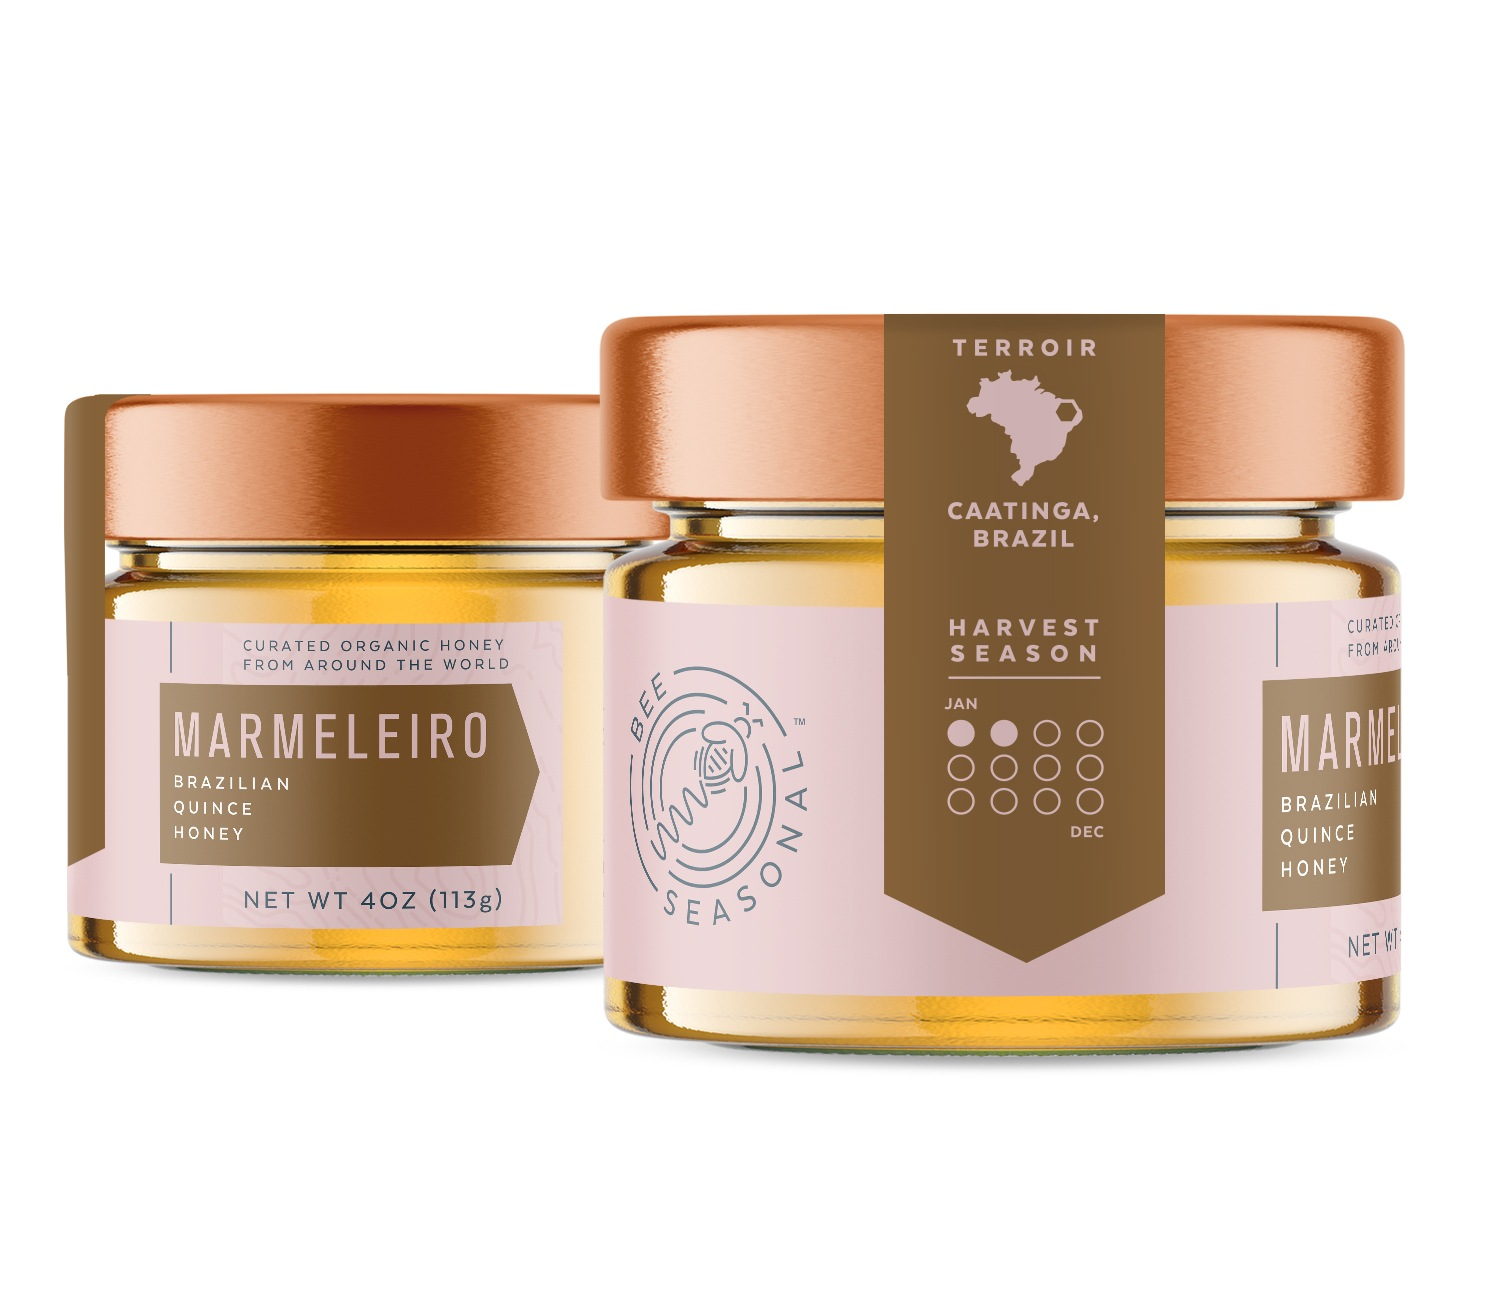 Bee Seasonal Honey Packaging Design